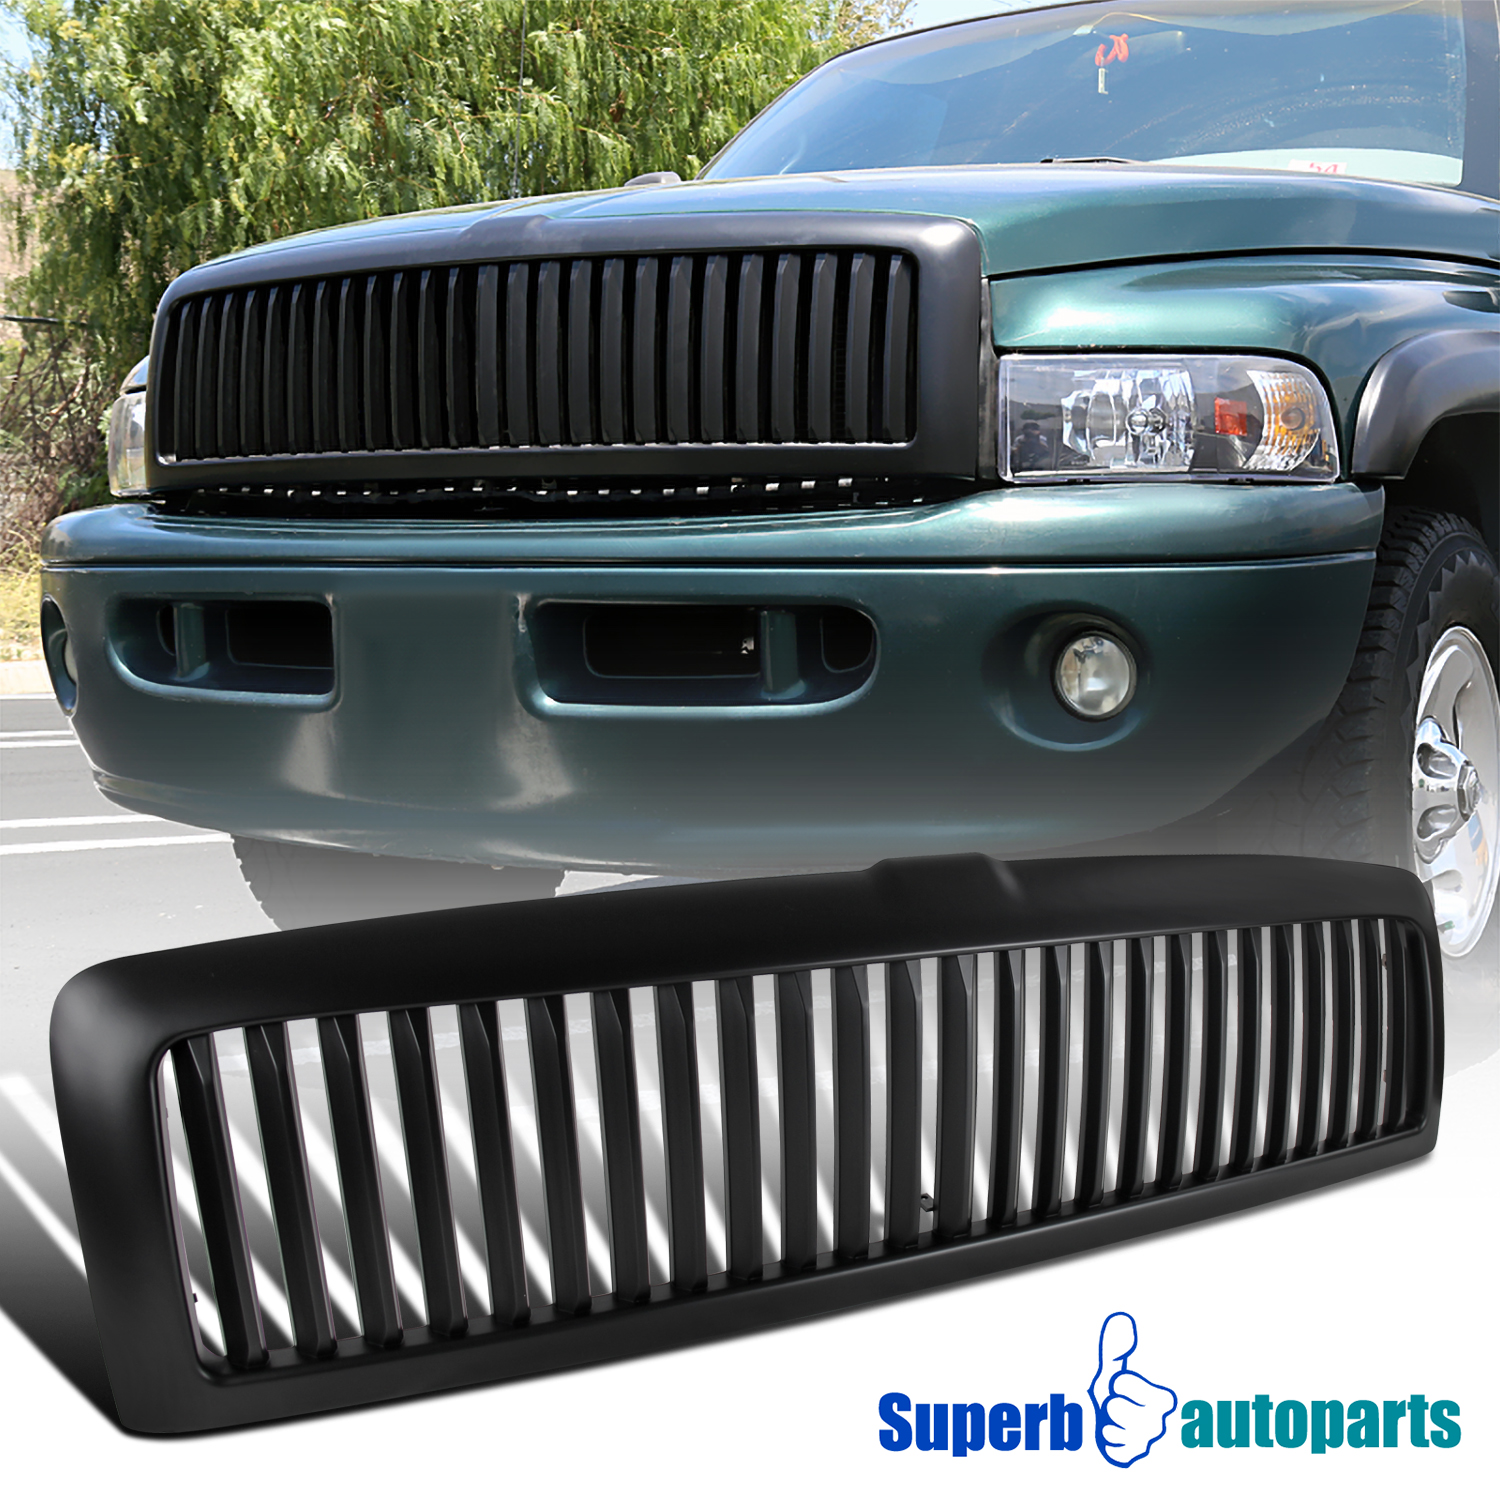 for 1994 2001 dodge ram 1500 2500 3500 abs vertical front hood grill matte black ebay details about for 1994 2001 dodge ram 1500 2500 3500 abs vertical front hood grill matte black